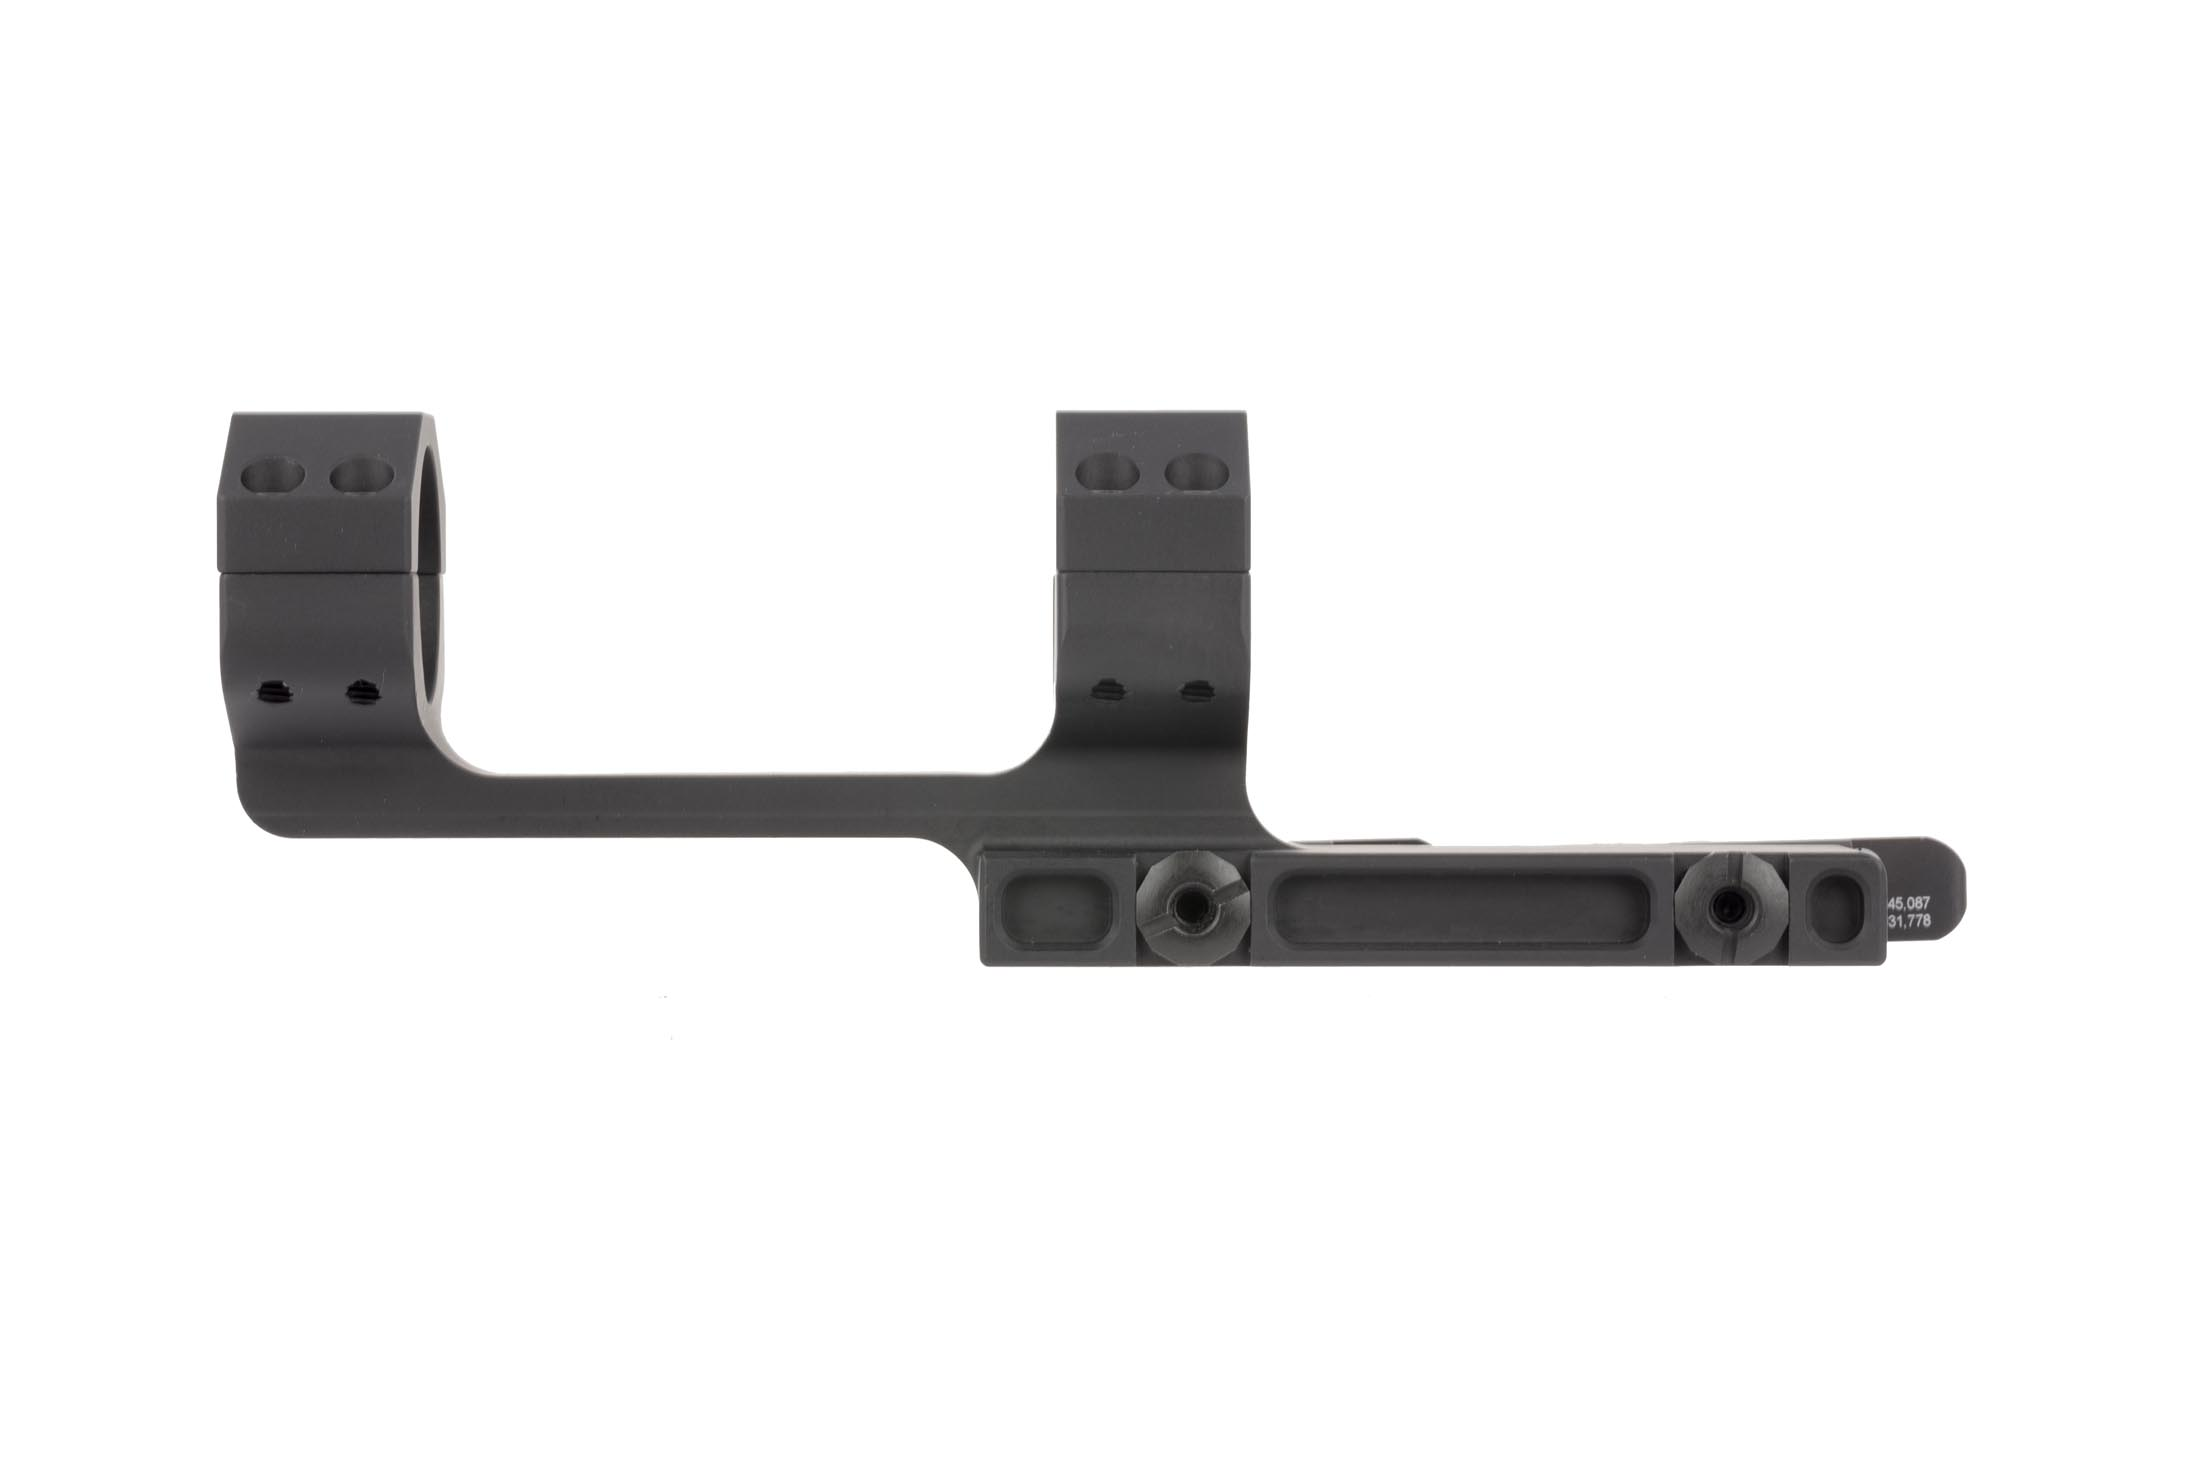 The Midwest Industries QD mount features a hardcoat anodized black finish for additional protection